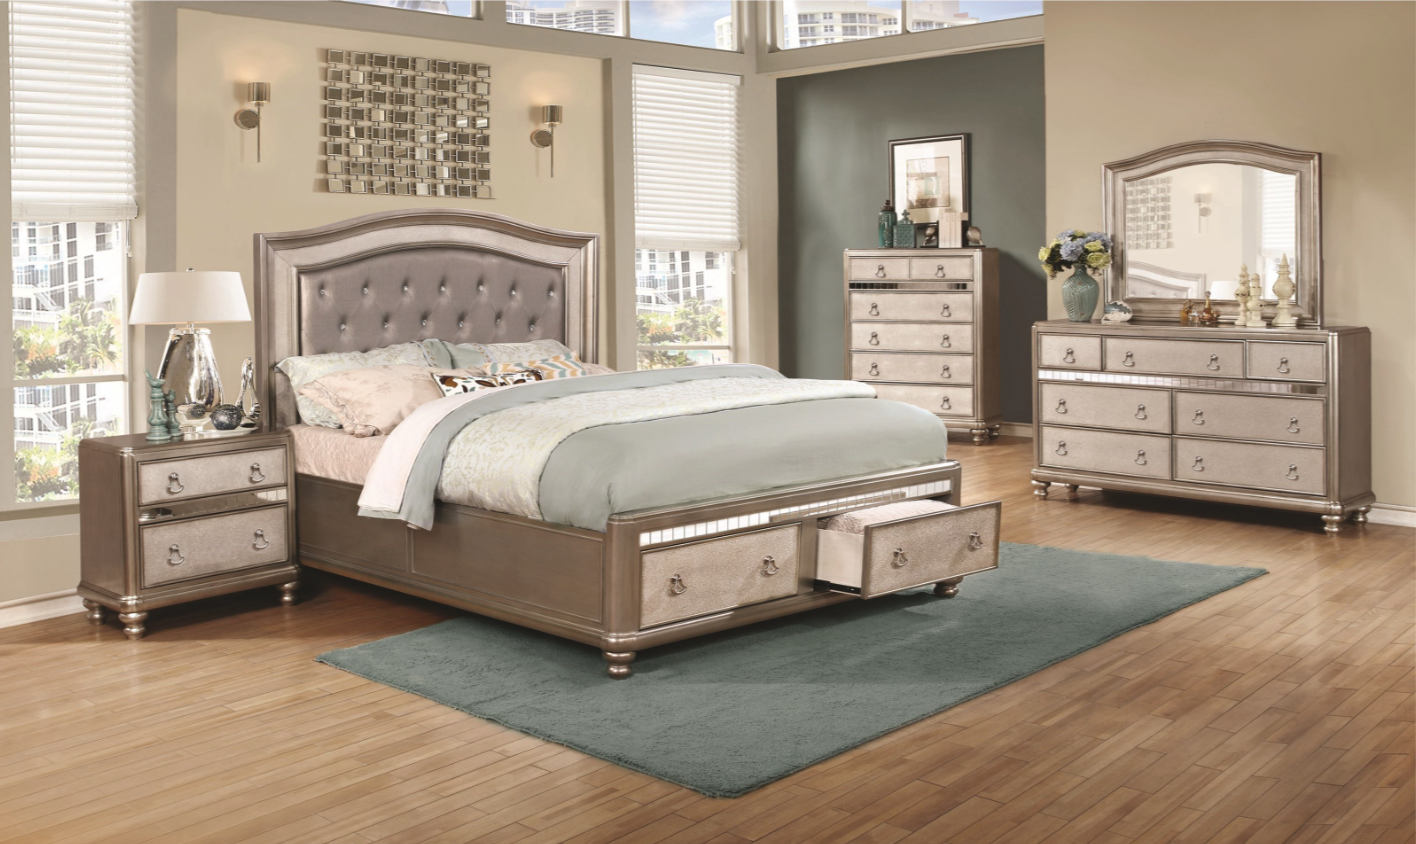 Bling Game 4pc Storage Bedroom Set – Furniture Mattress Los Angeles ...